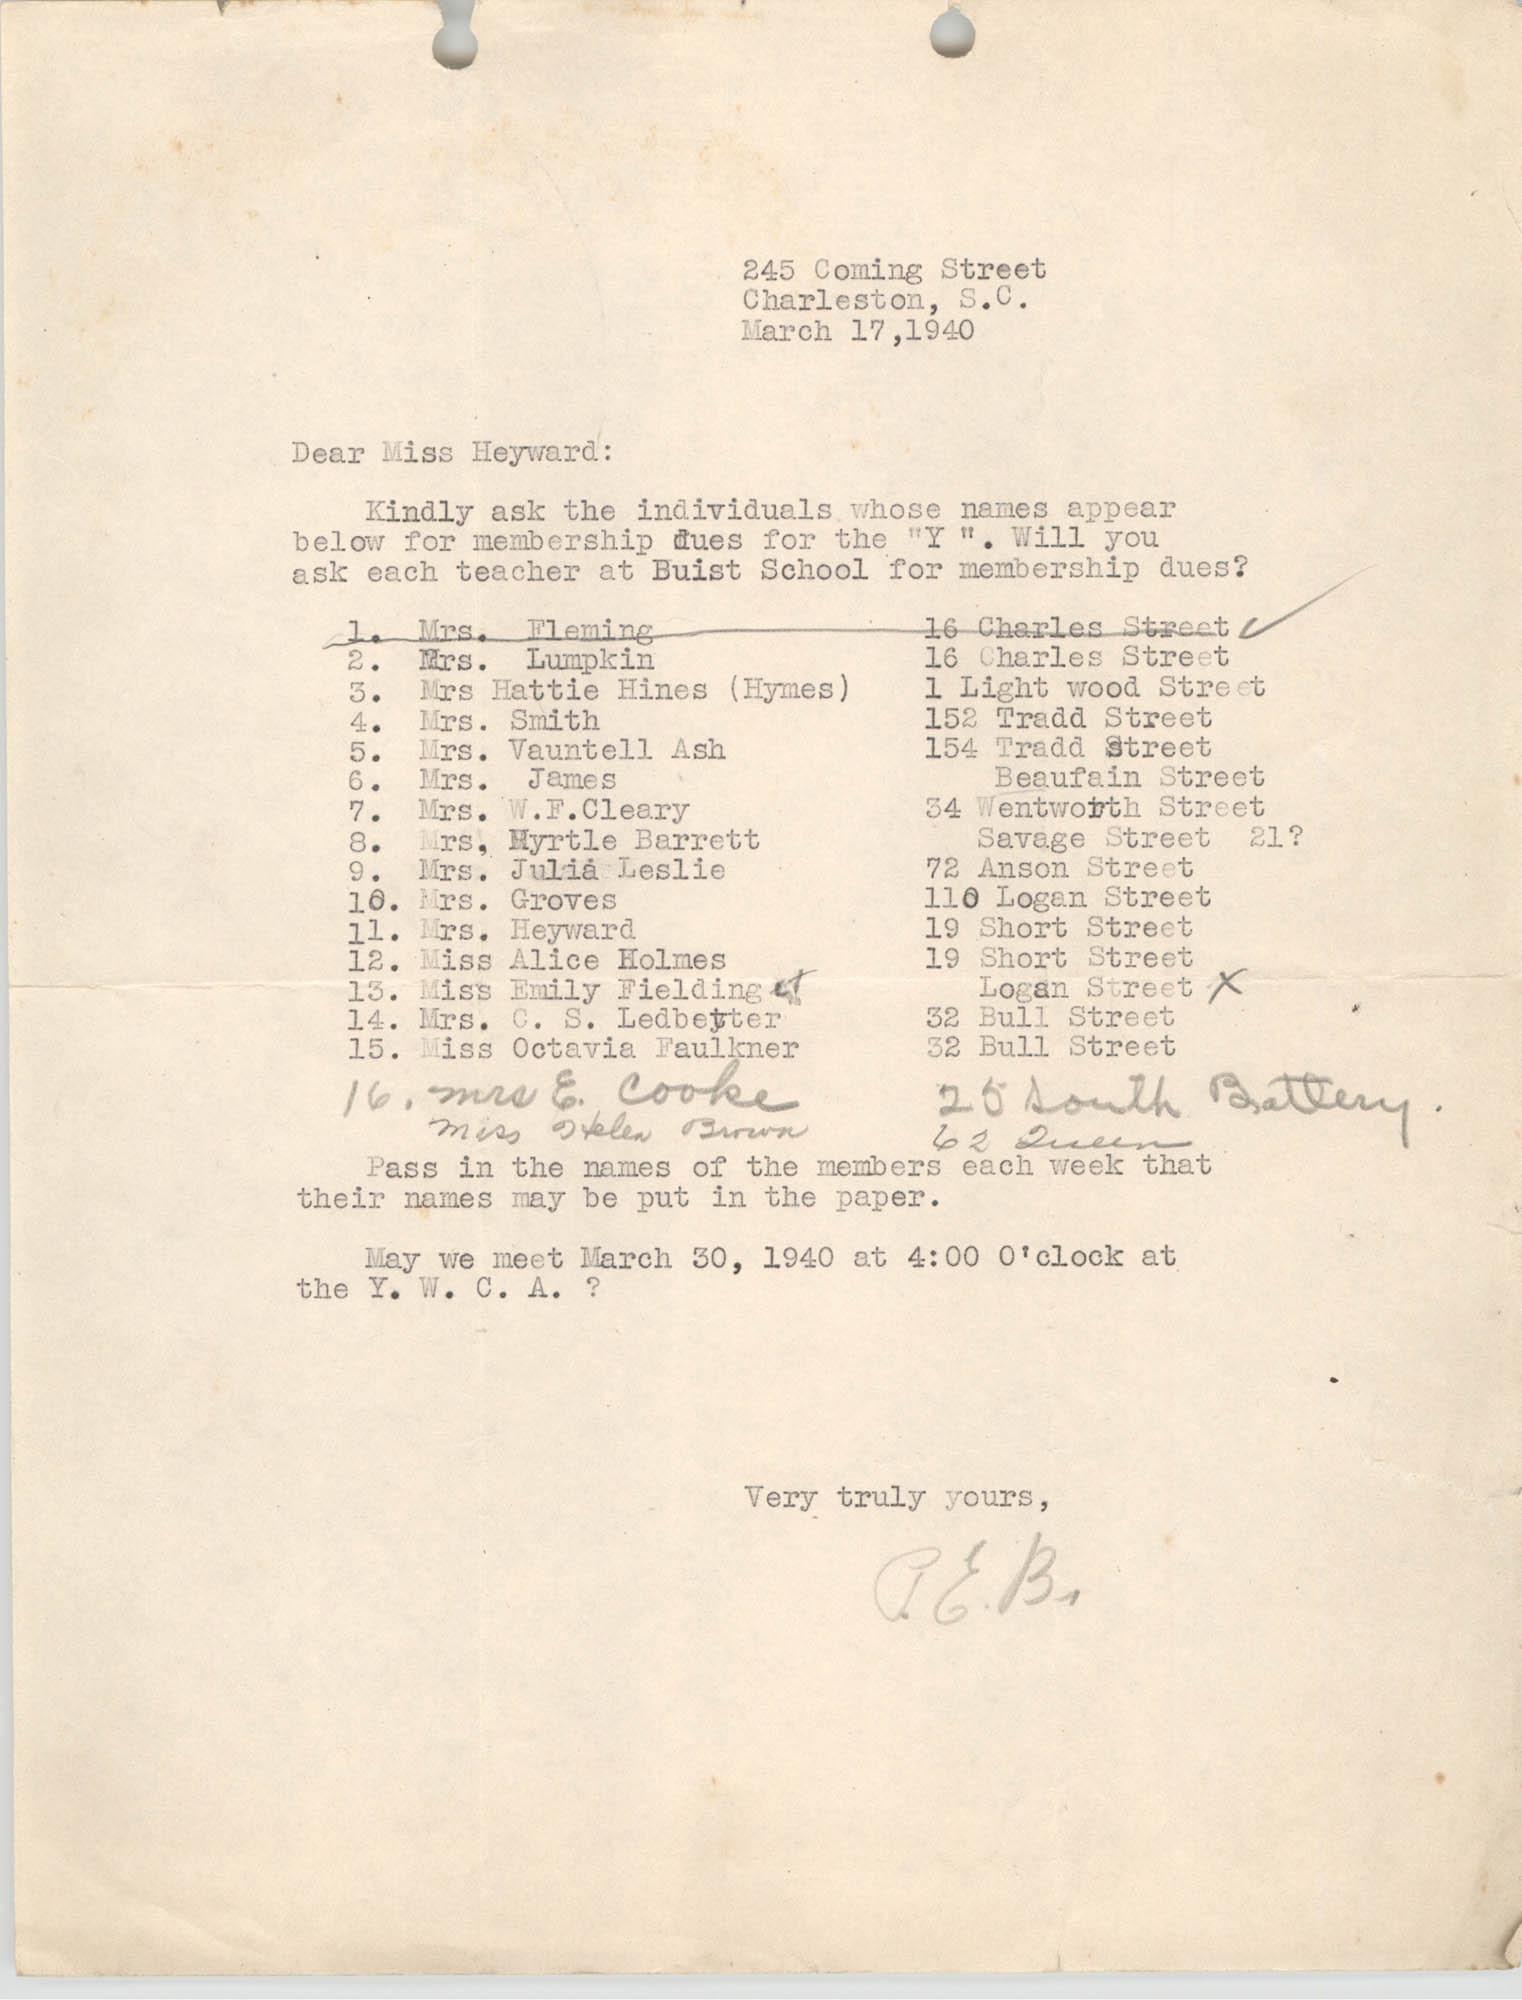 Letter to Miss Heyward, March 17, 1940